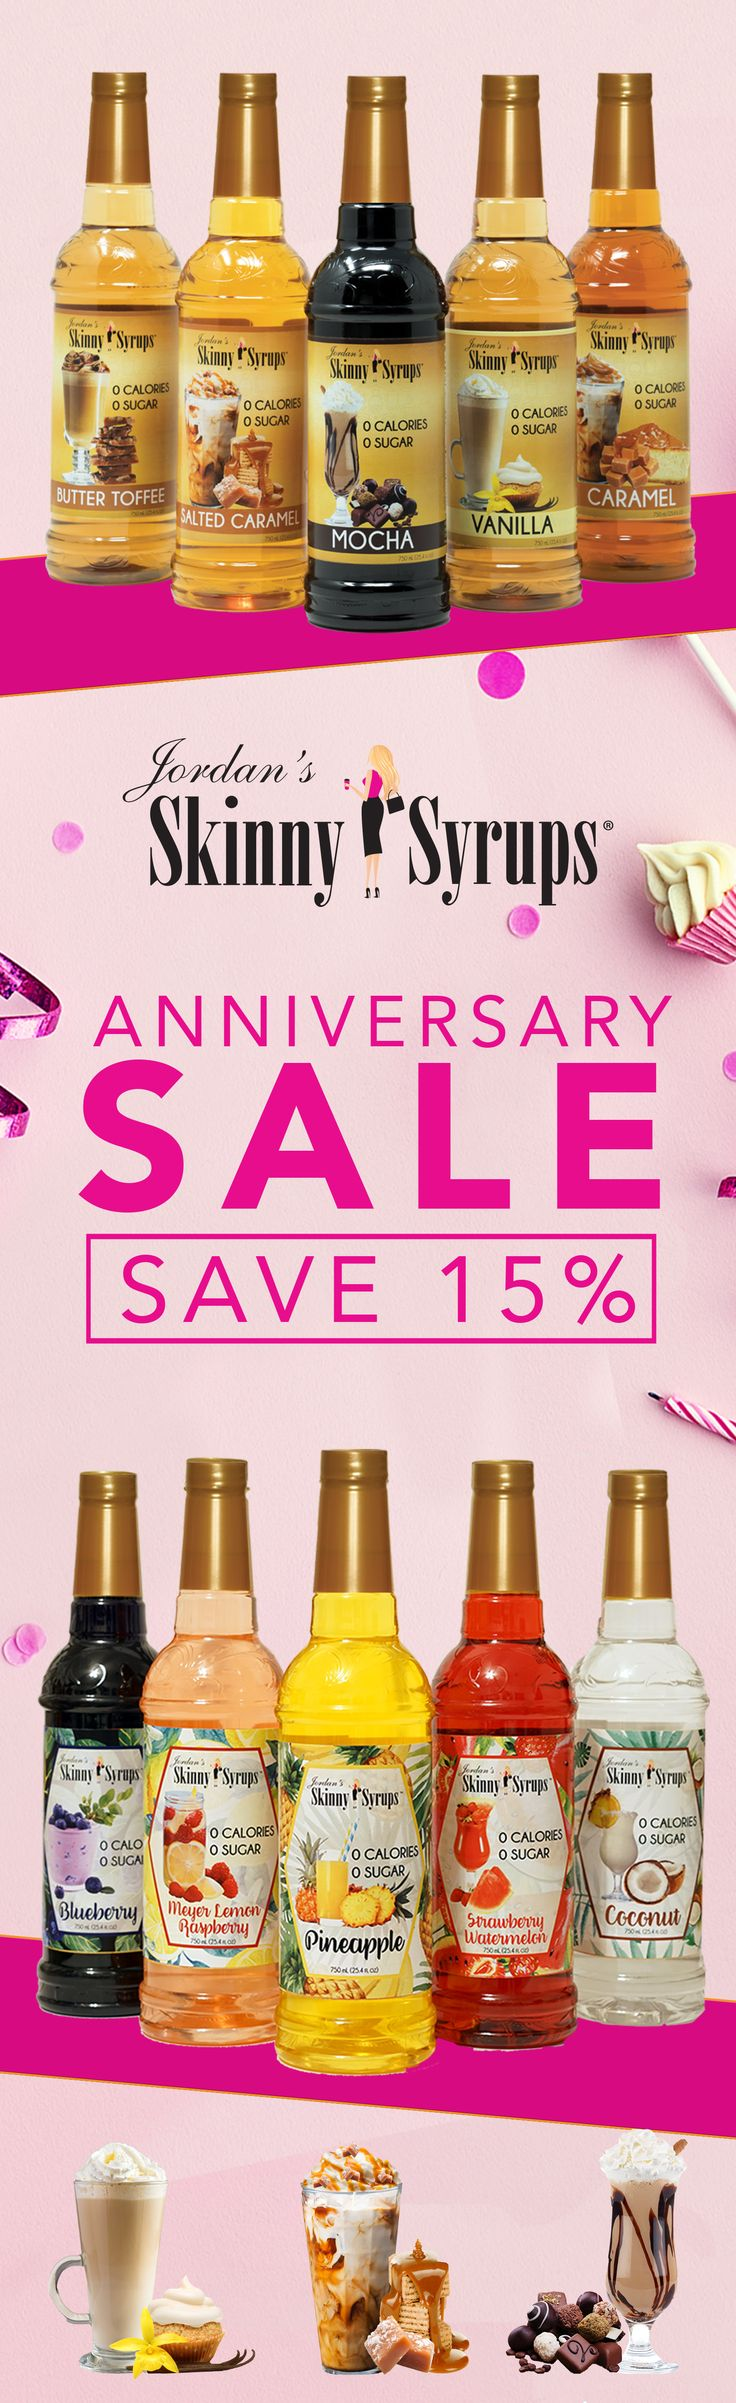 Save 15% on ALL Skinny Syrups. 0 calories, 0 sugar & 0 carbs with all the flavor you love. Mix up your own creation from coffee to smoothies with 50+ flavors.